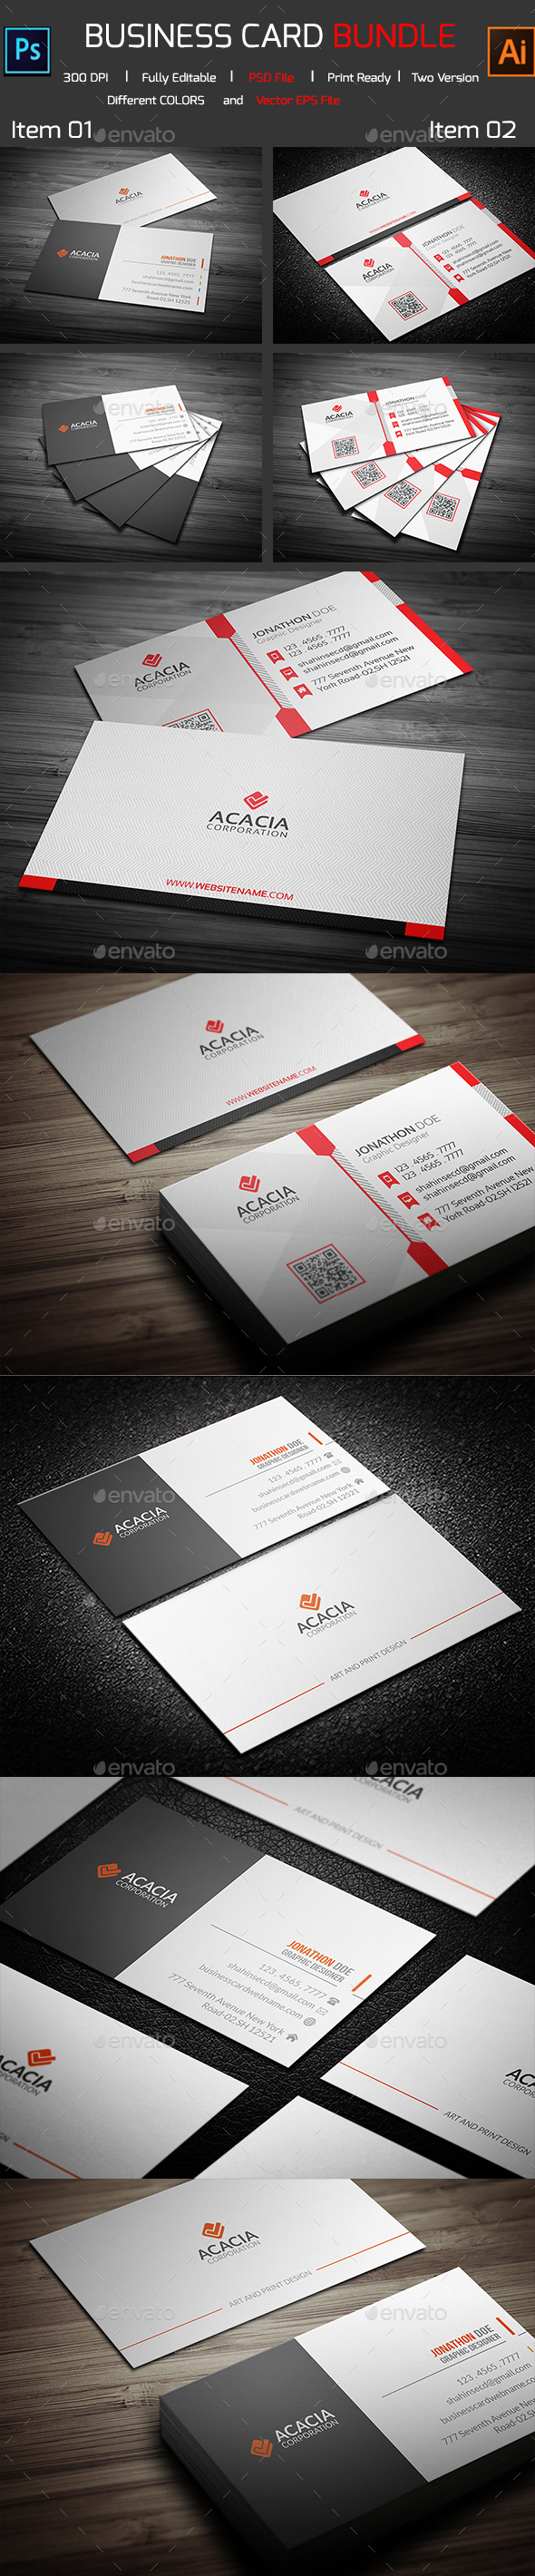 Bundle- 2 in 1 Business Card 03 - Corporate Business Cards